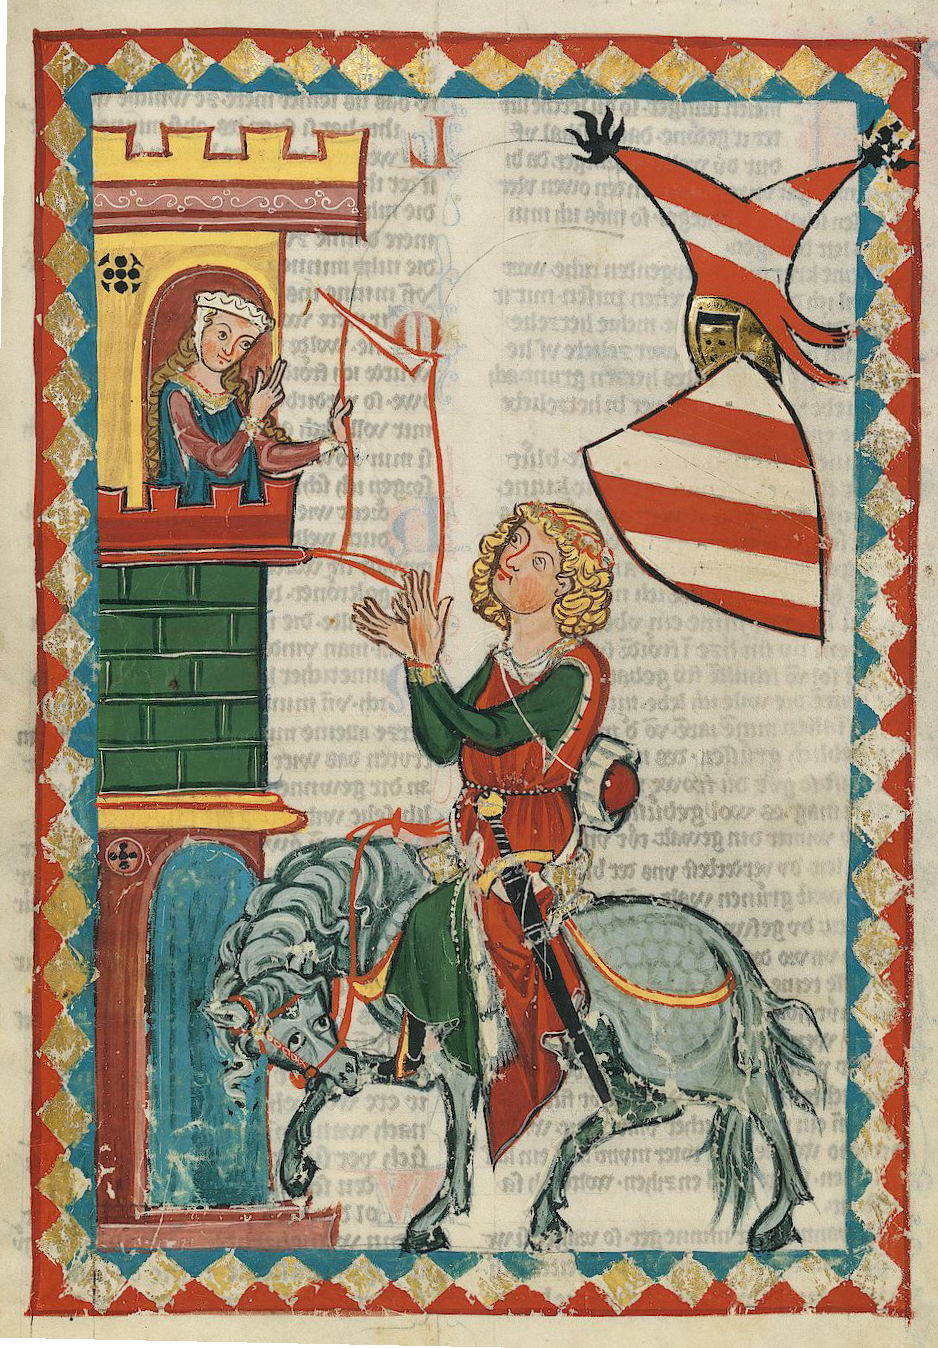 Codex manesse minnesa nger 1